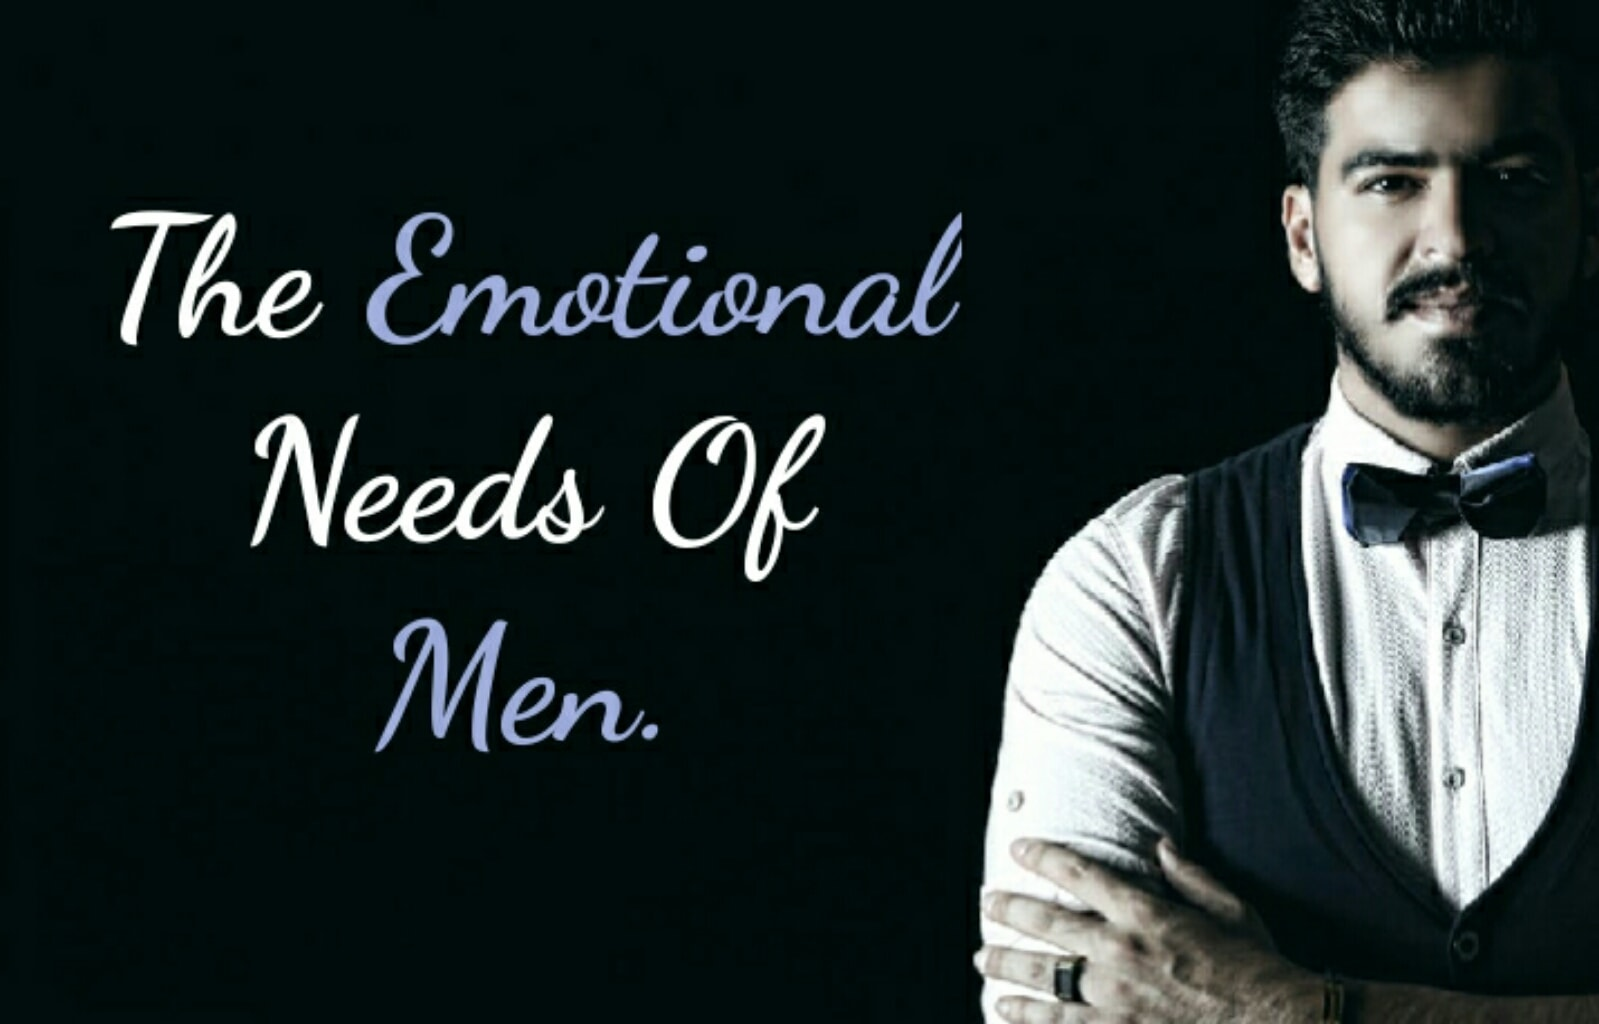 The Emotional Needs of Men